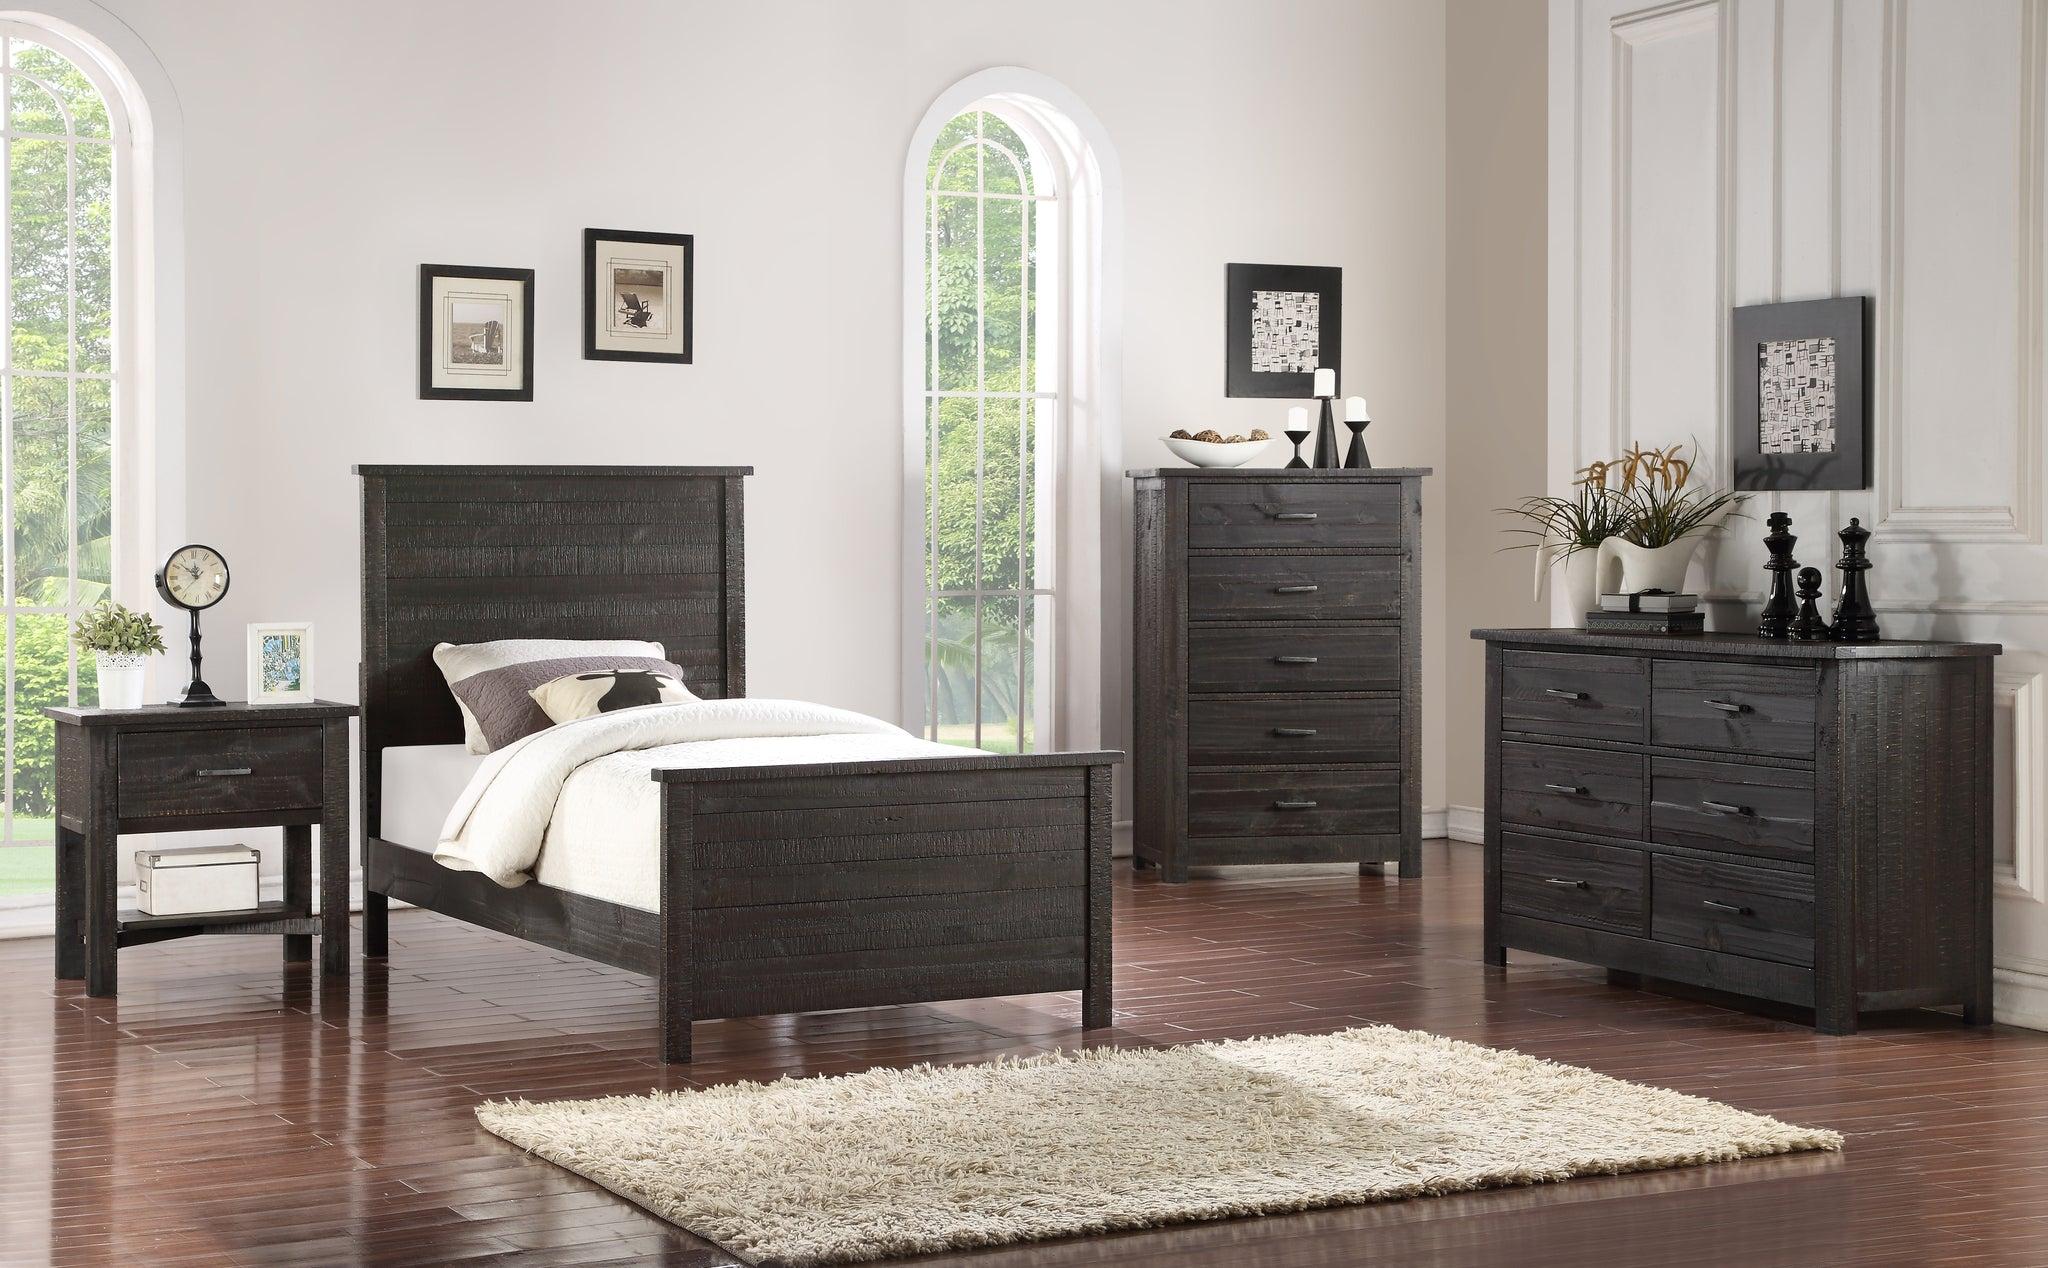 ... Madison Charcoal Or Natural Wood 6 Drawer Rustic Kids Bedroom Double Dresser  Organizer Display Cabinet ...